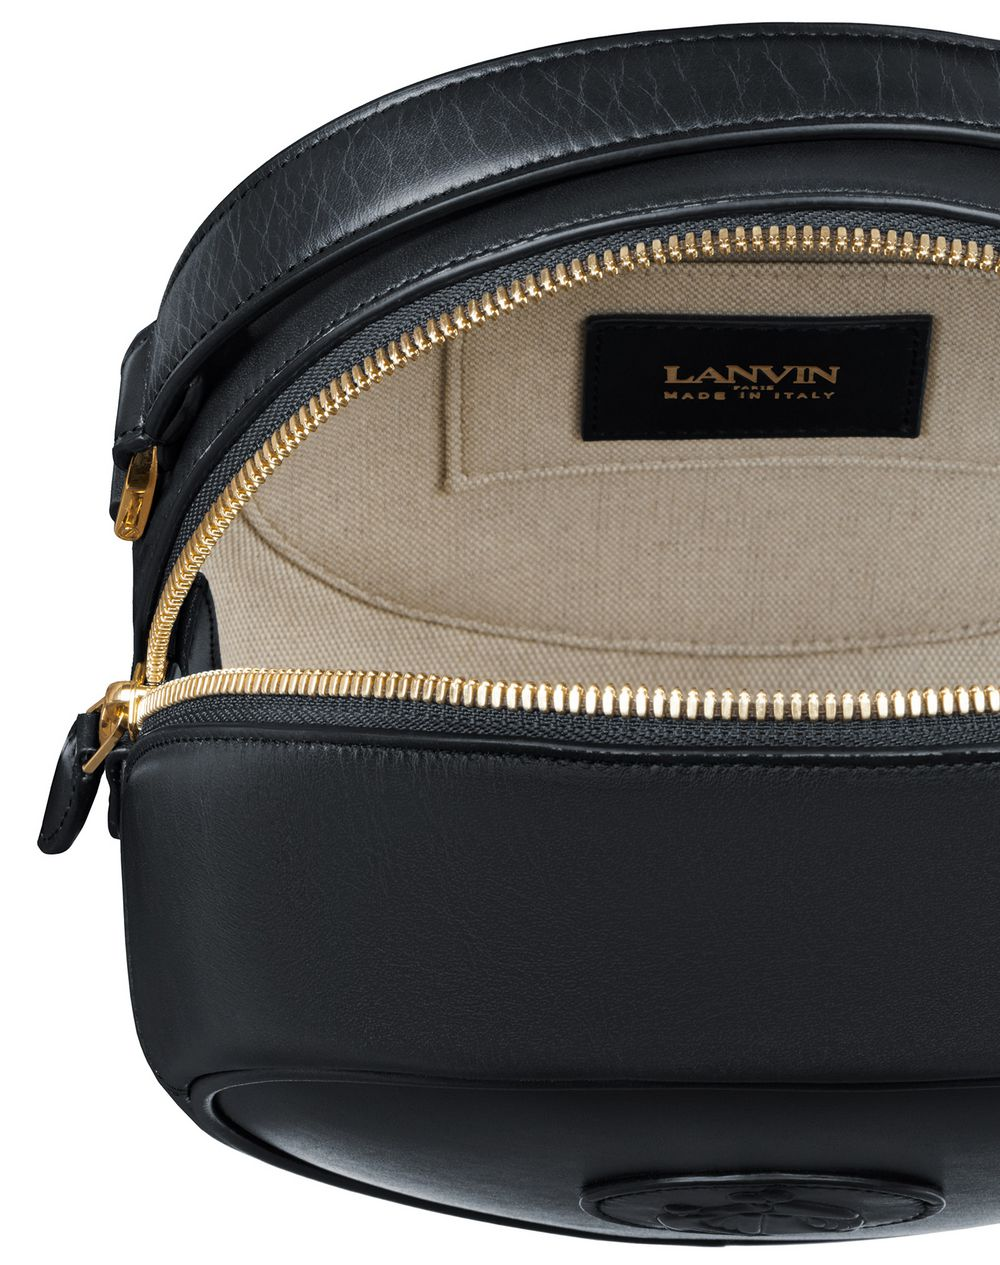 COOKIE BAG IN CALFSKIN LEATHER - Lanvin